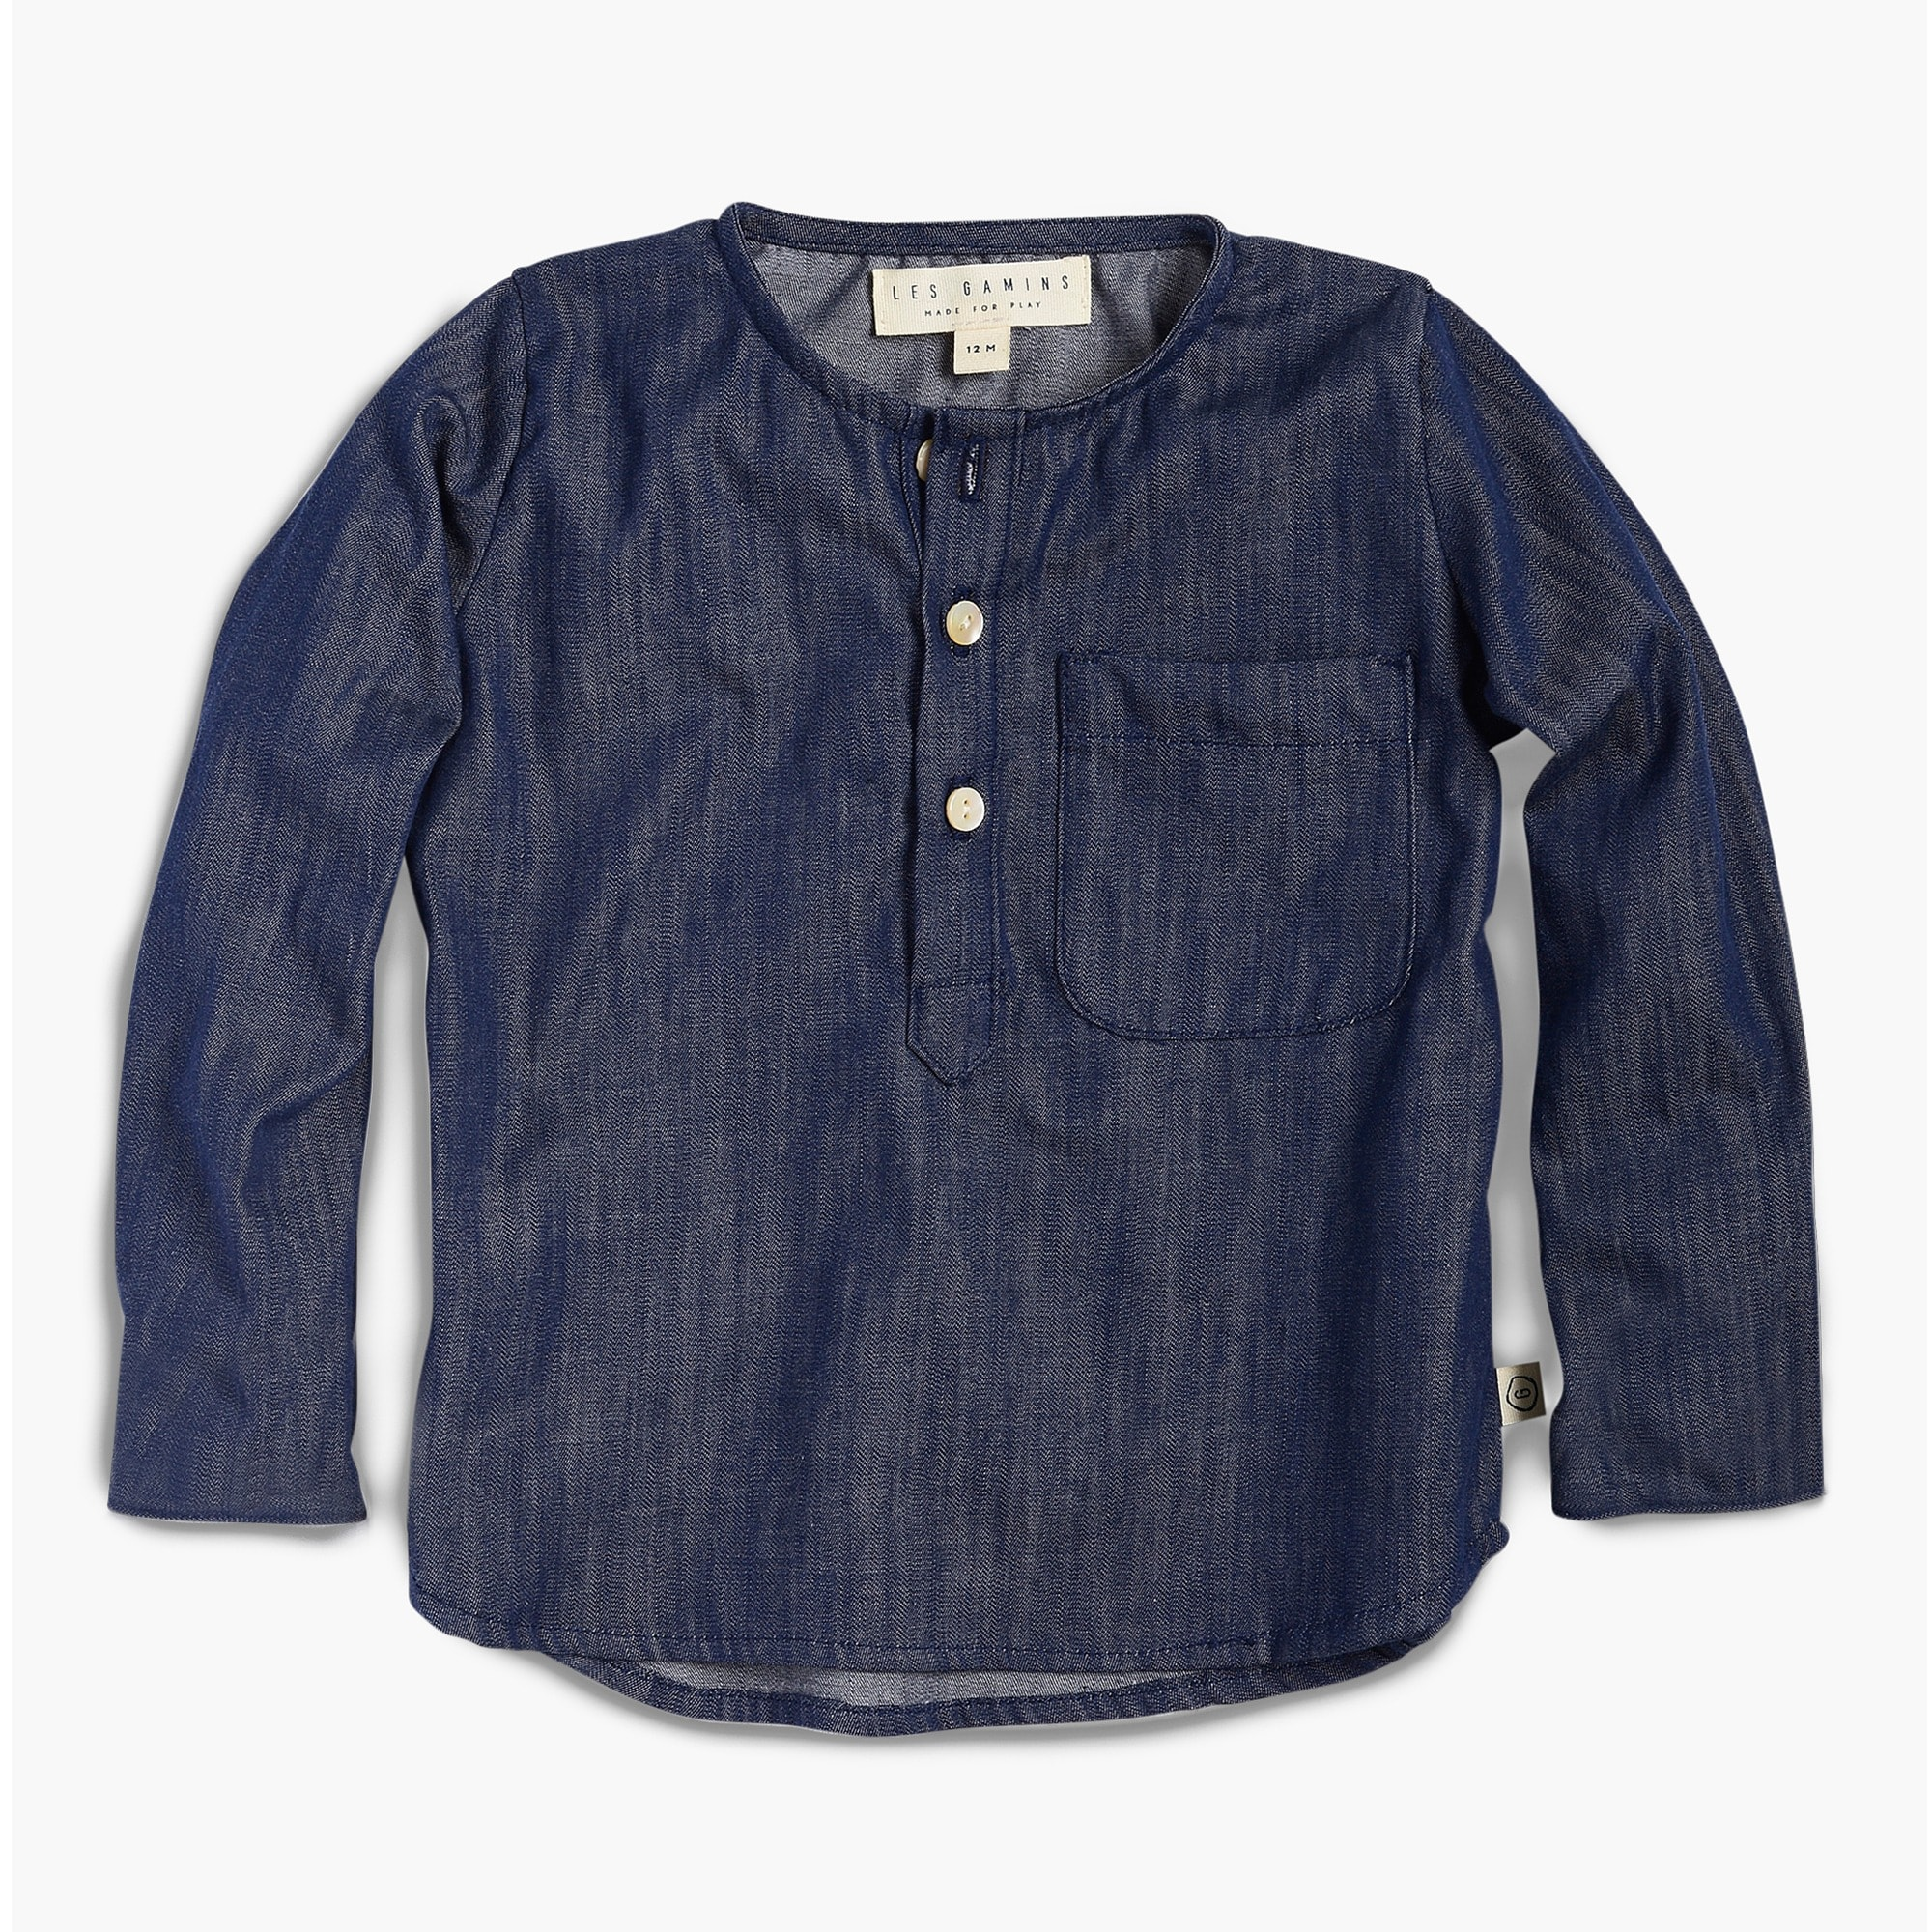 boys Kids' Les Gamins chambray shirt